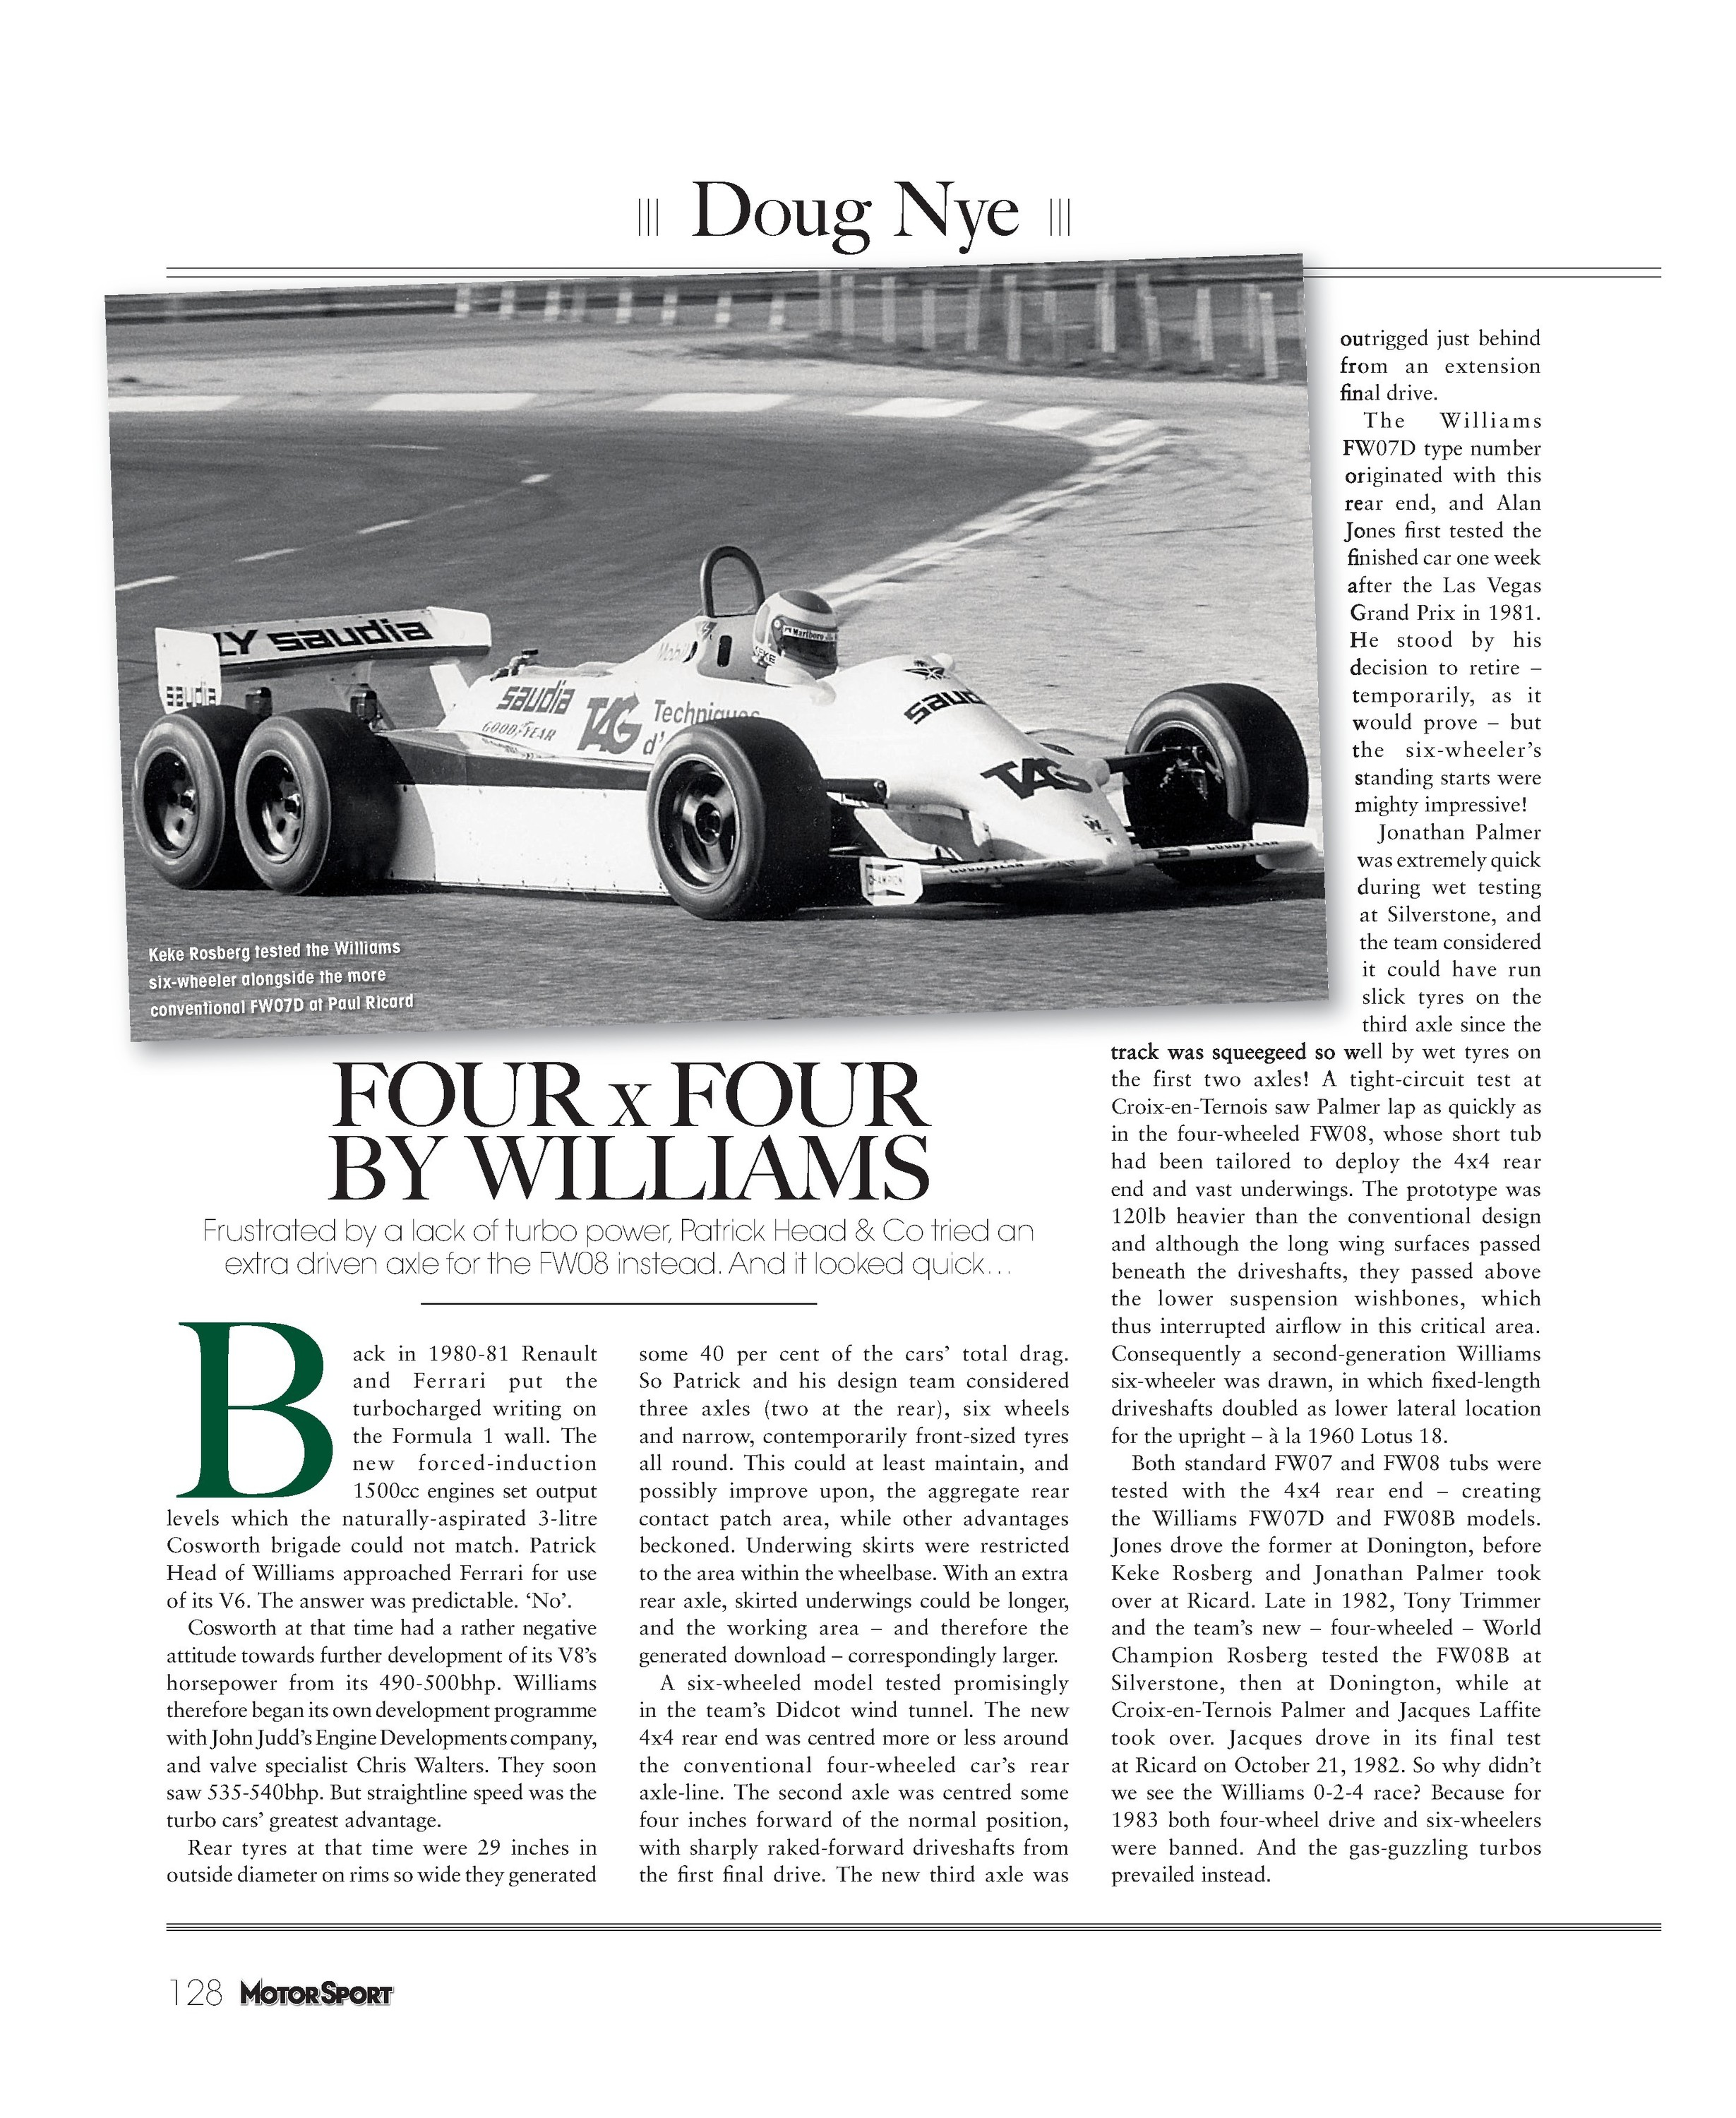 Four x four by Williams | Motor Sport Magazine Archive